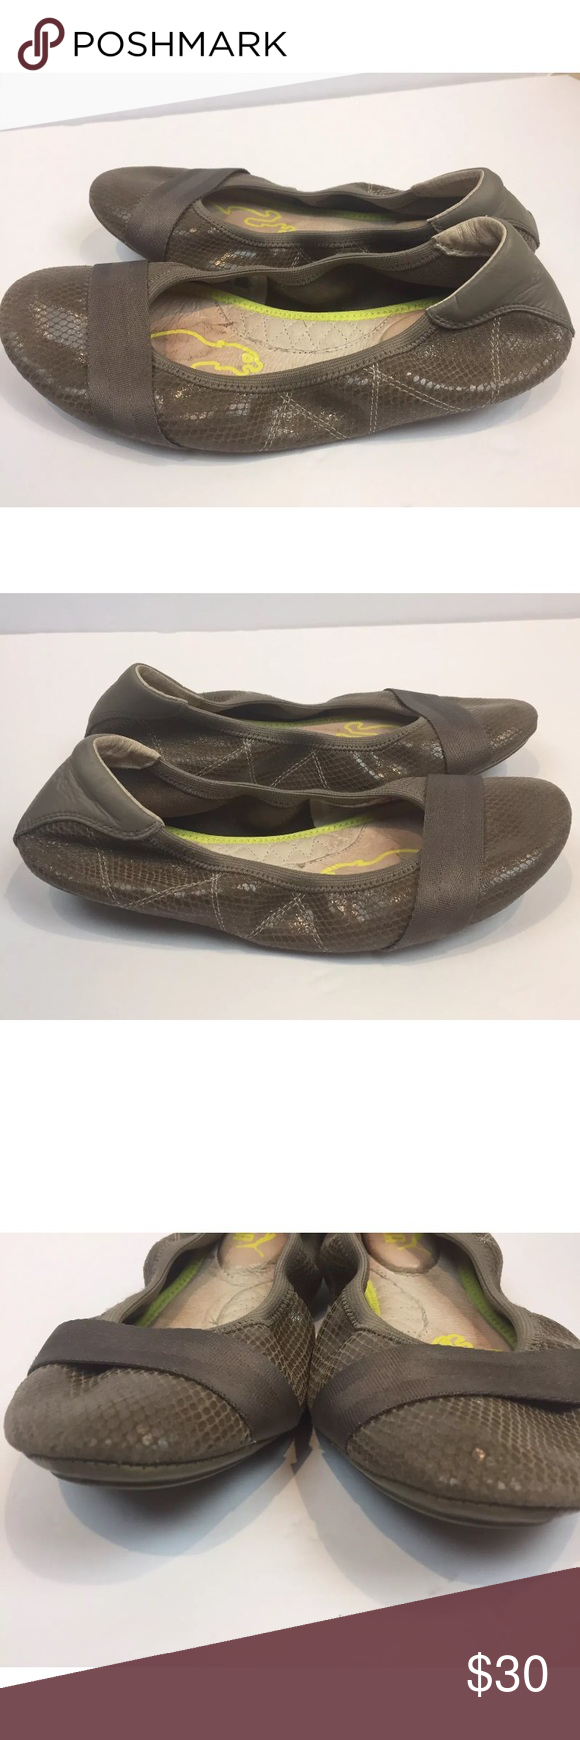 2cc68d29bbc Puma Woman s Brown Leather Ballet Flats shoes SZ 8 Puma woman s leather  brown Stretchy ballet flats size 8 Med. Good pre owned condition.